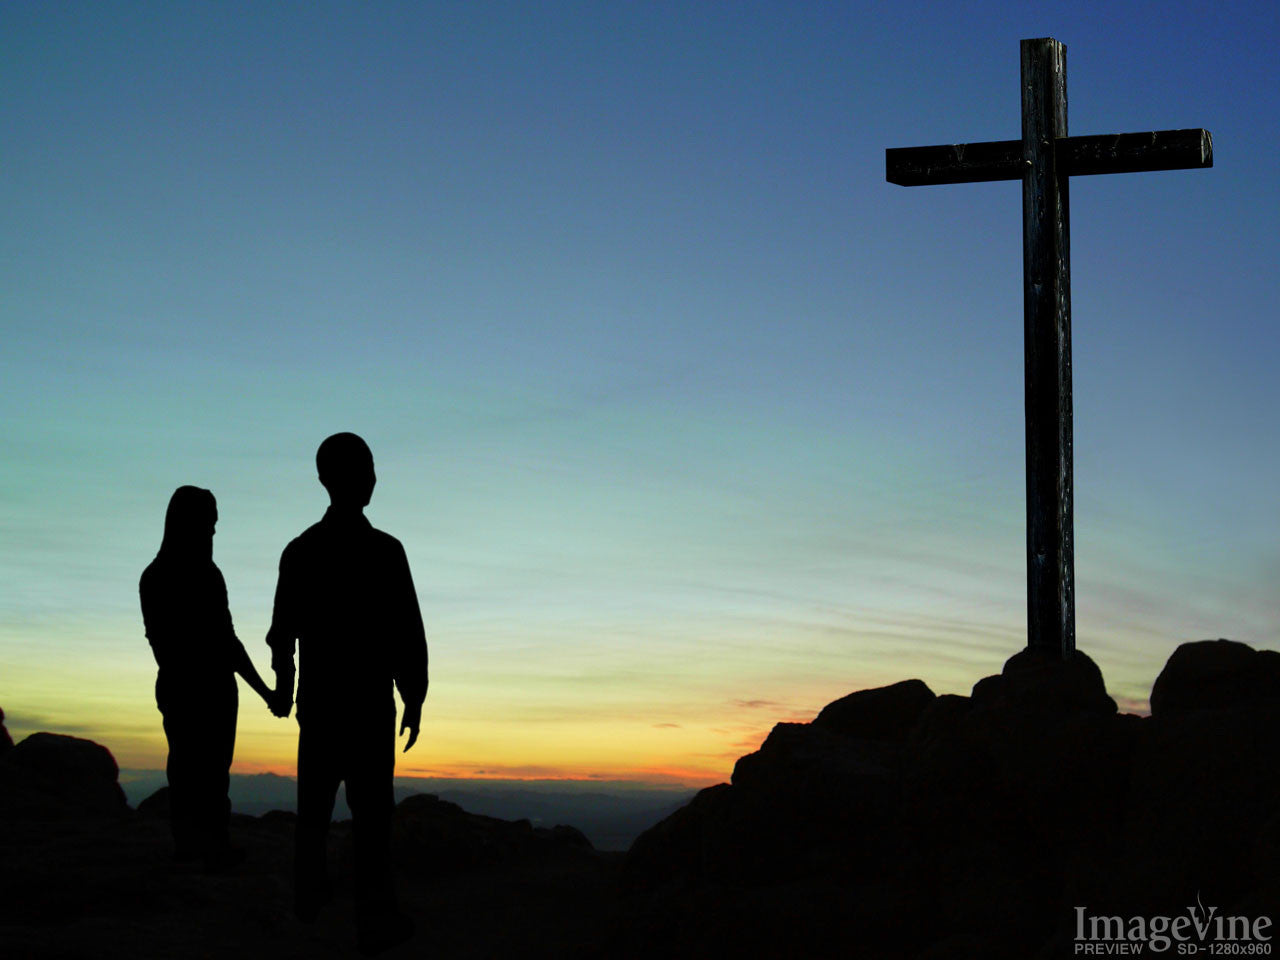 foot of the cross backgrounds imagevine